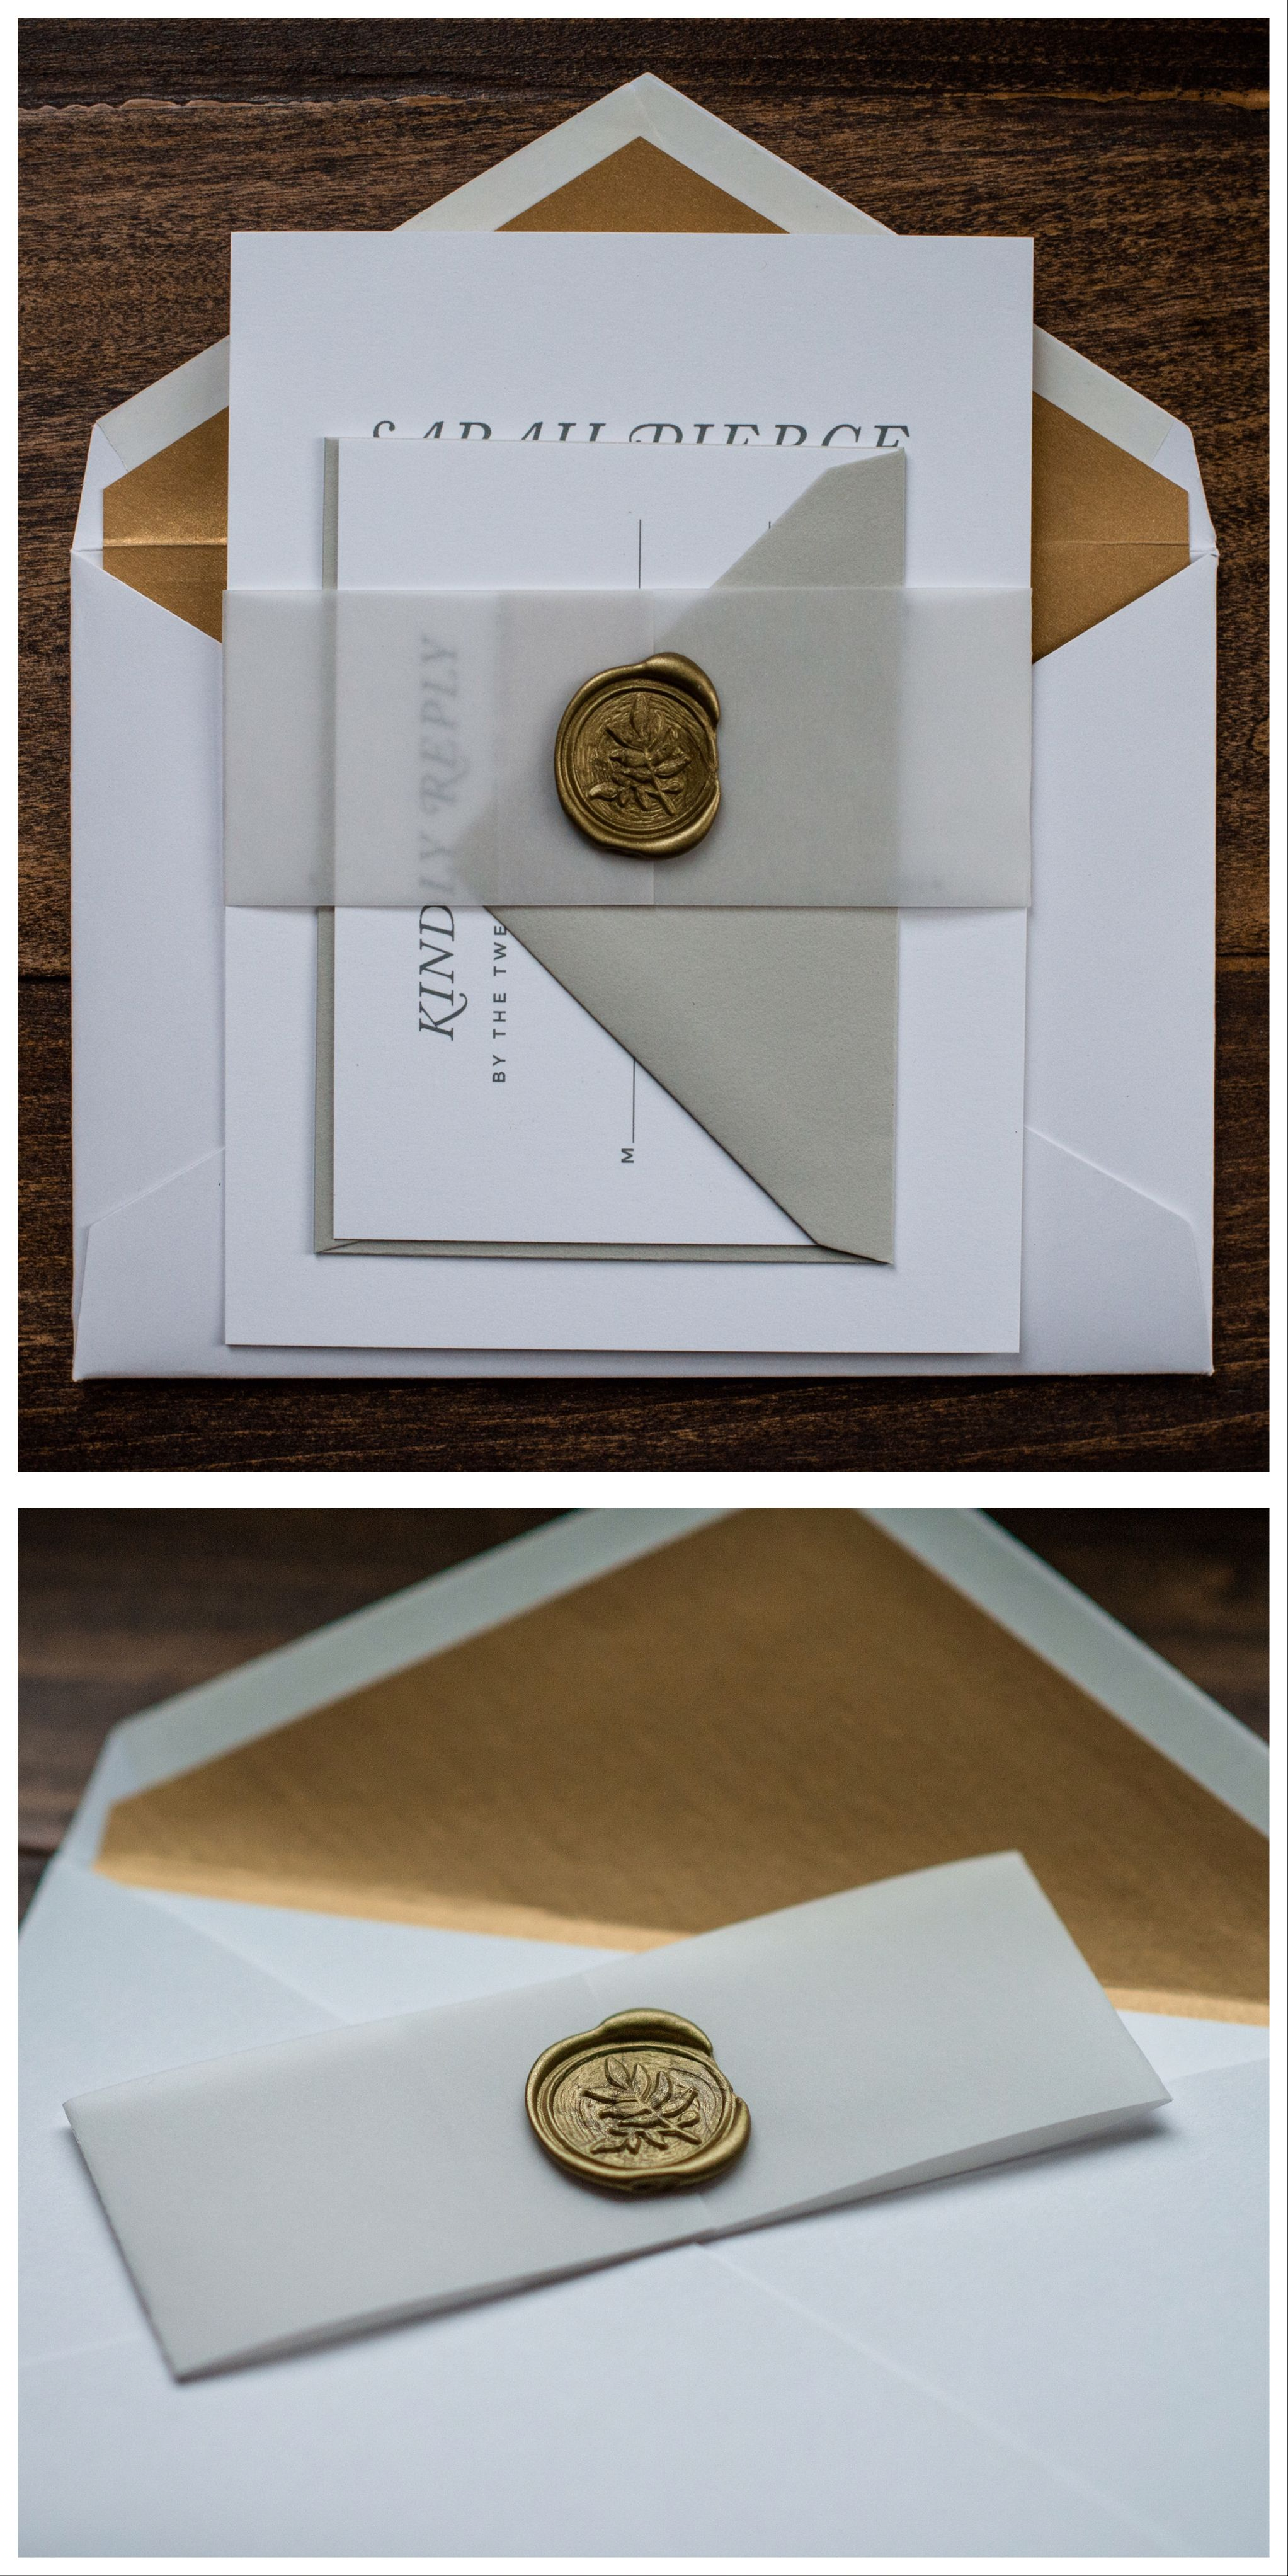 Vellum Wedding Invitation By Penn Paperie With Belly Band And Wax Seal Vellum Bel Origami Wedding Invitations Belly Band Invitation Wedding Invitation Paper